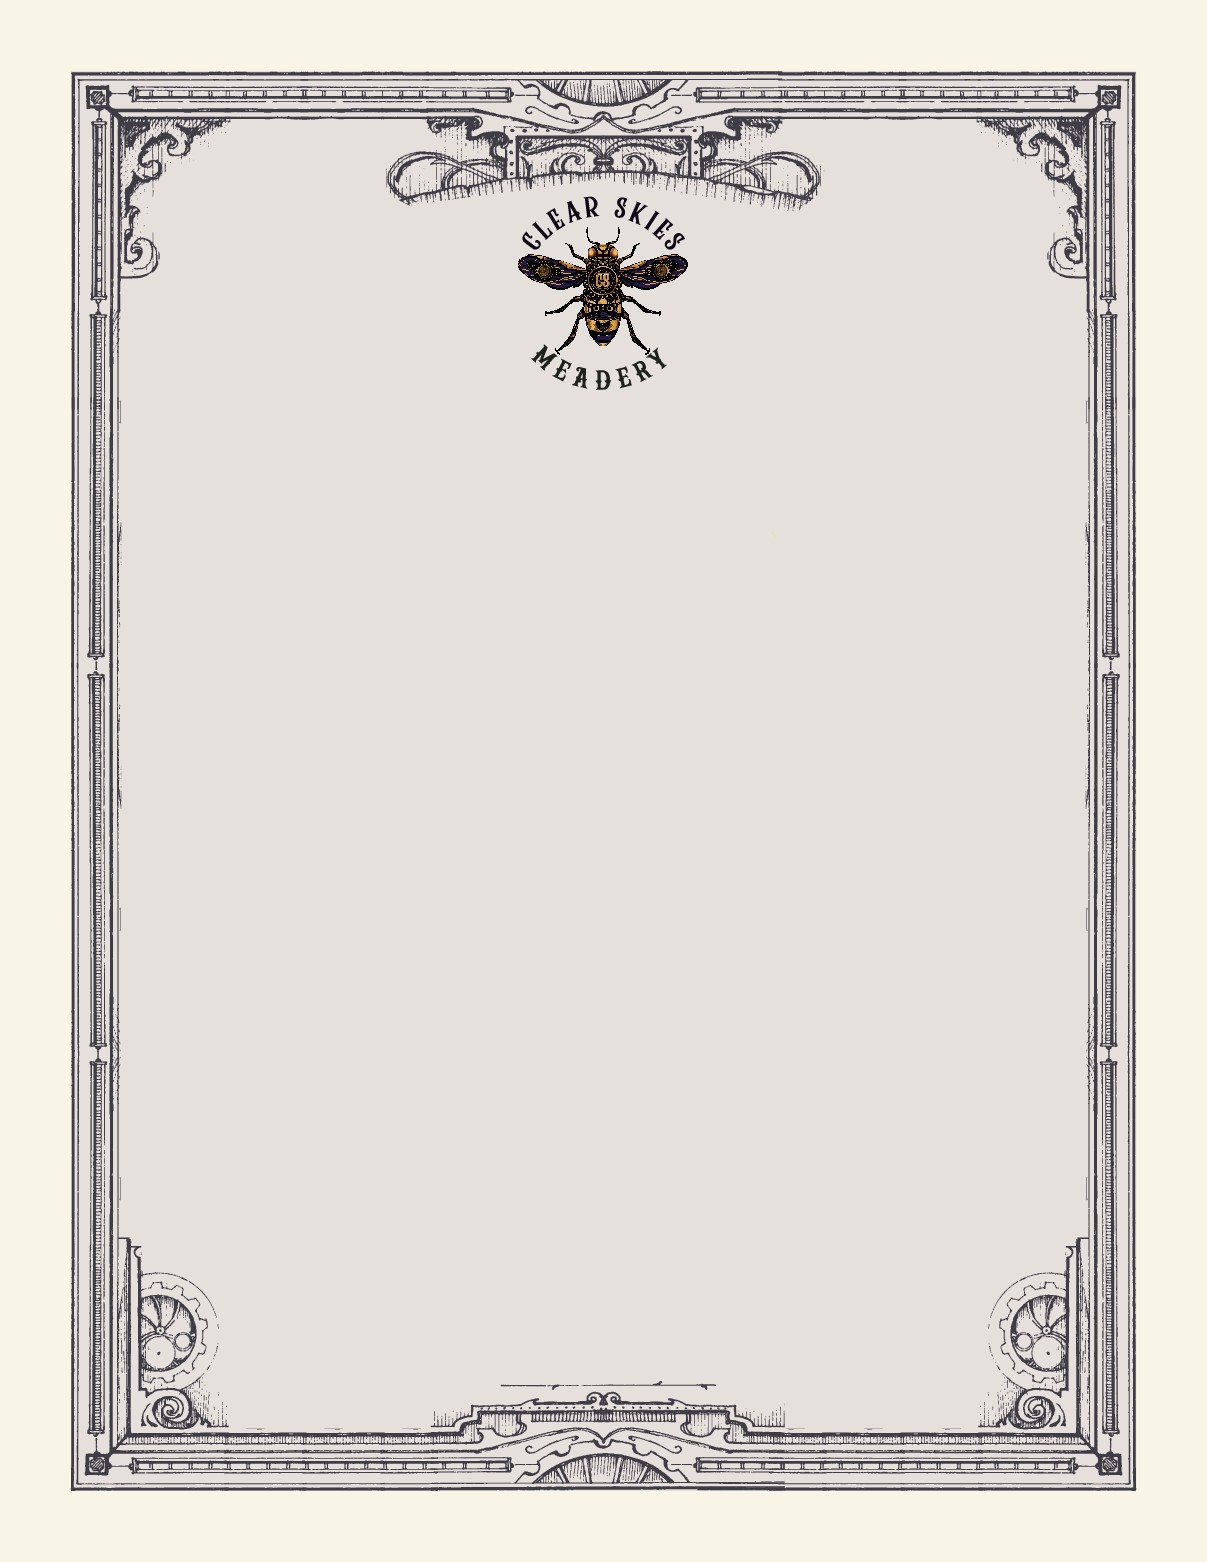 Create a steampunk bee template based on the labels for our menus.